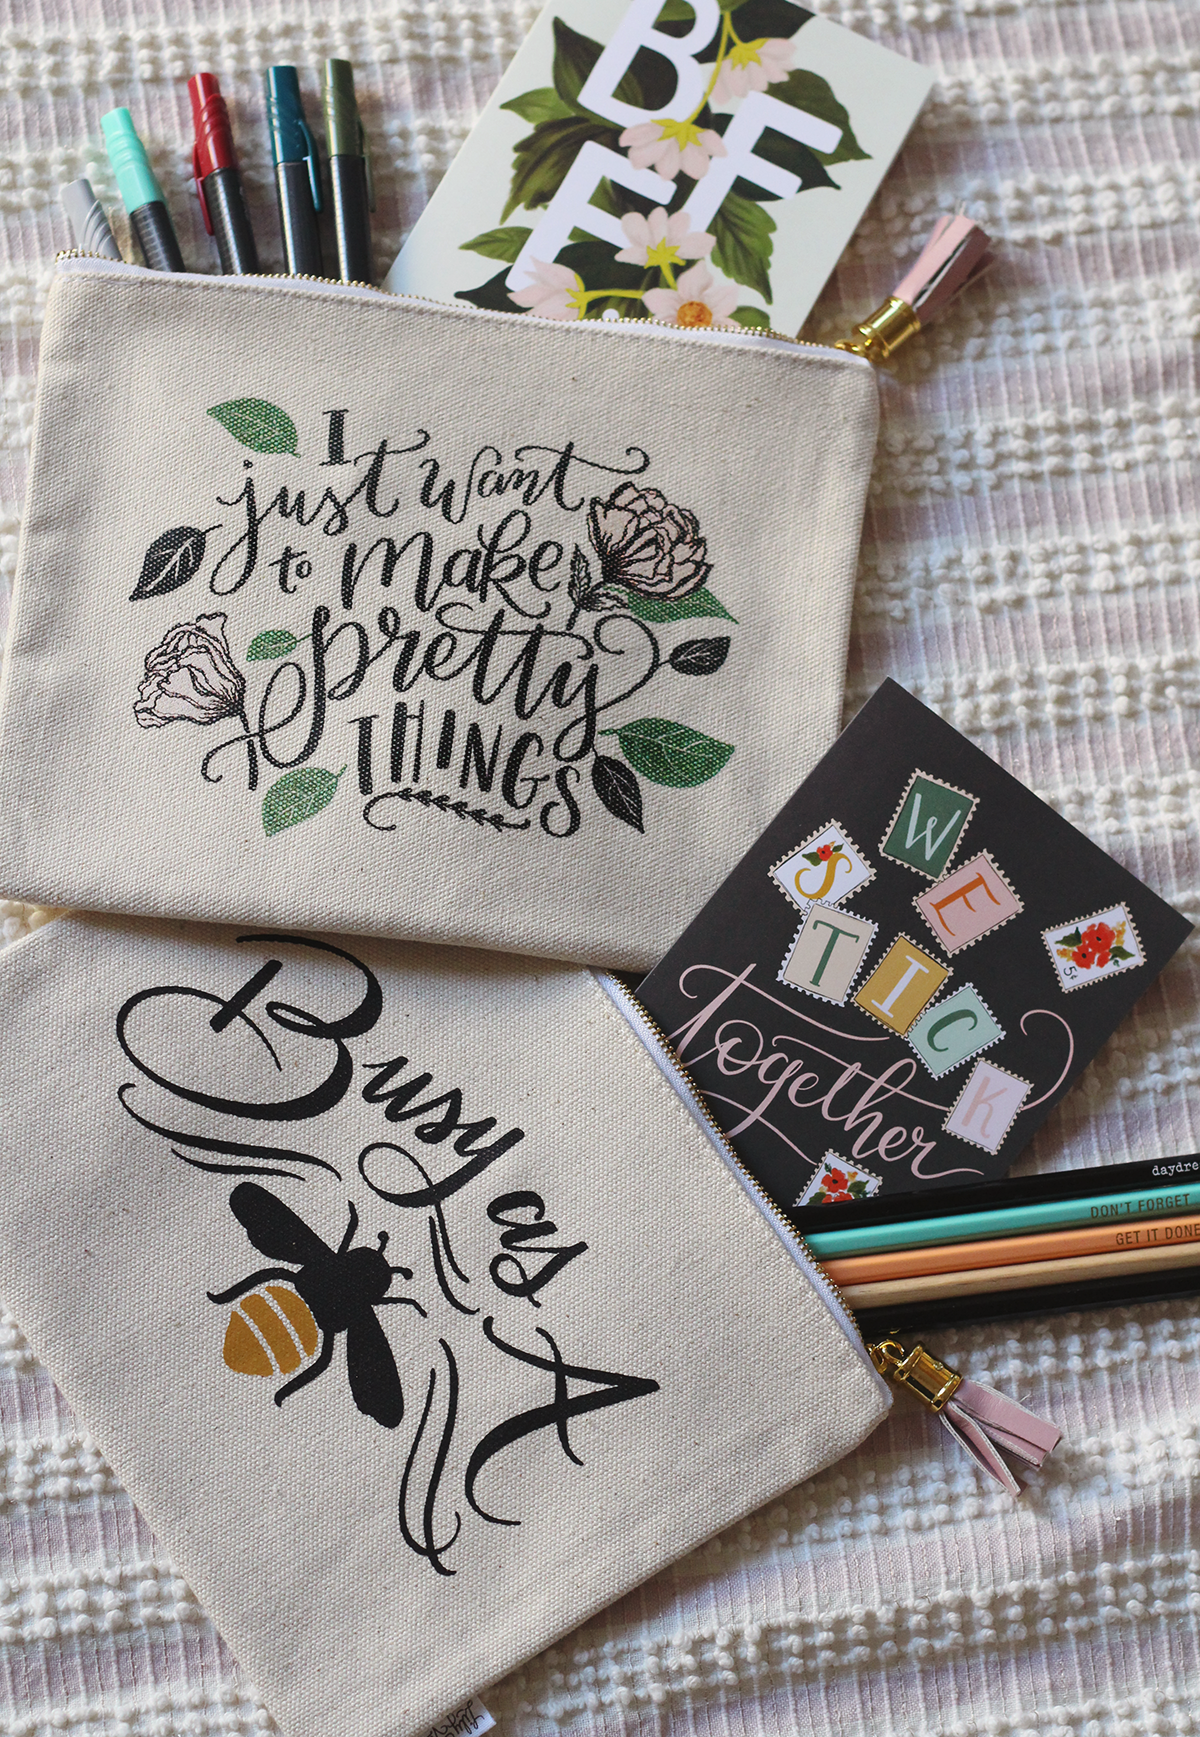 Beautiful new Canvas Pouches for everyone!